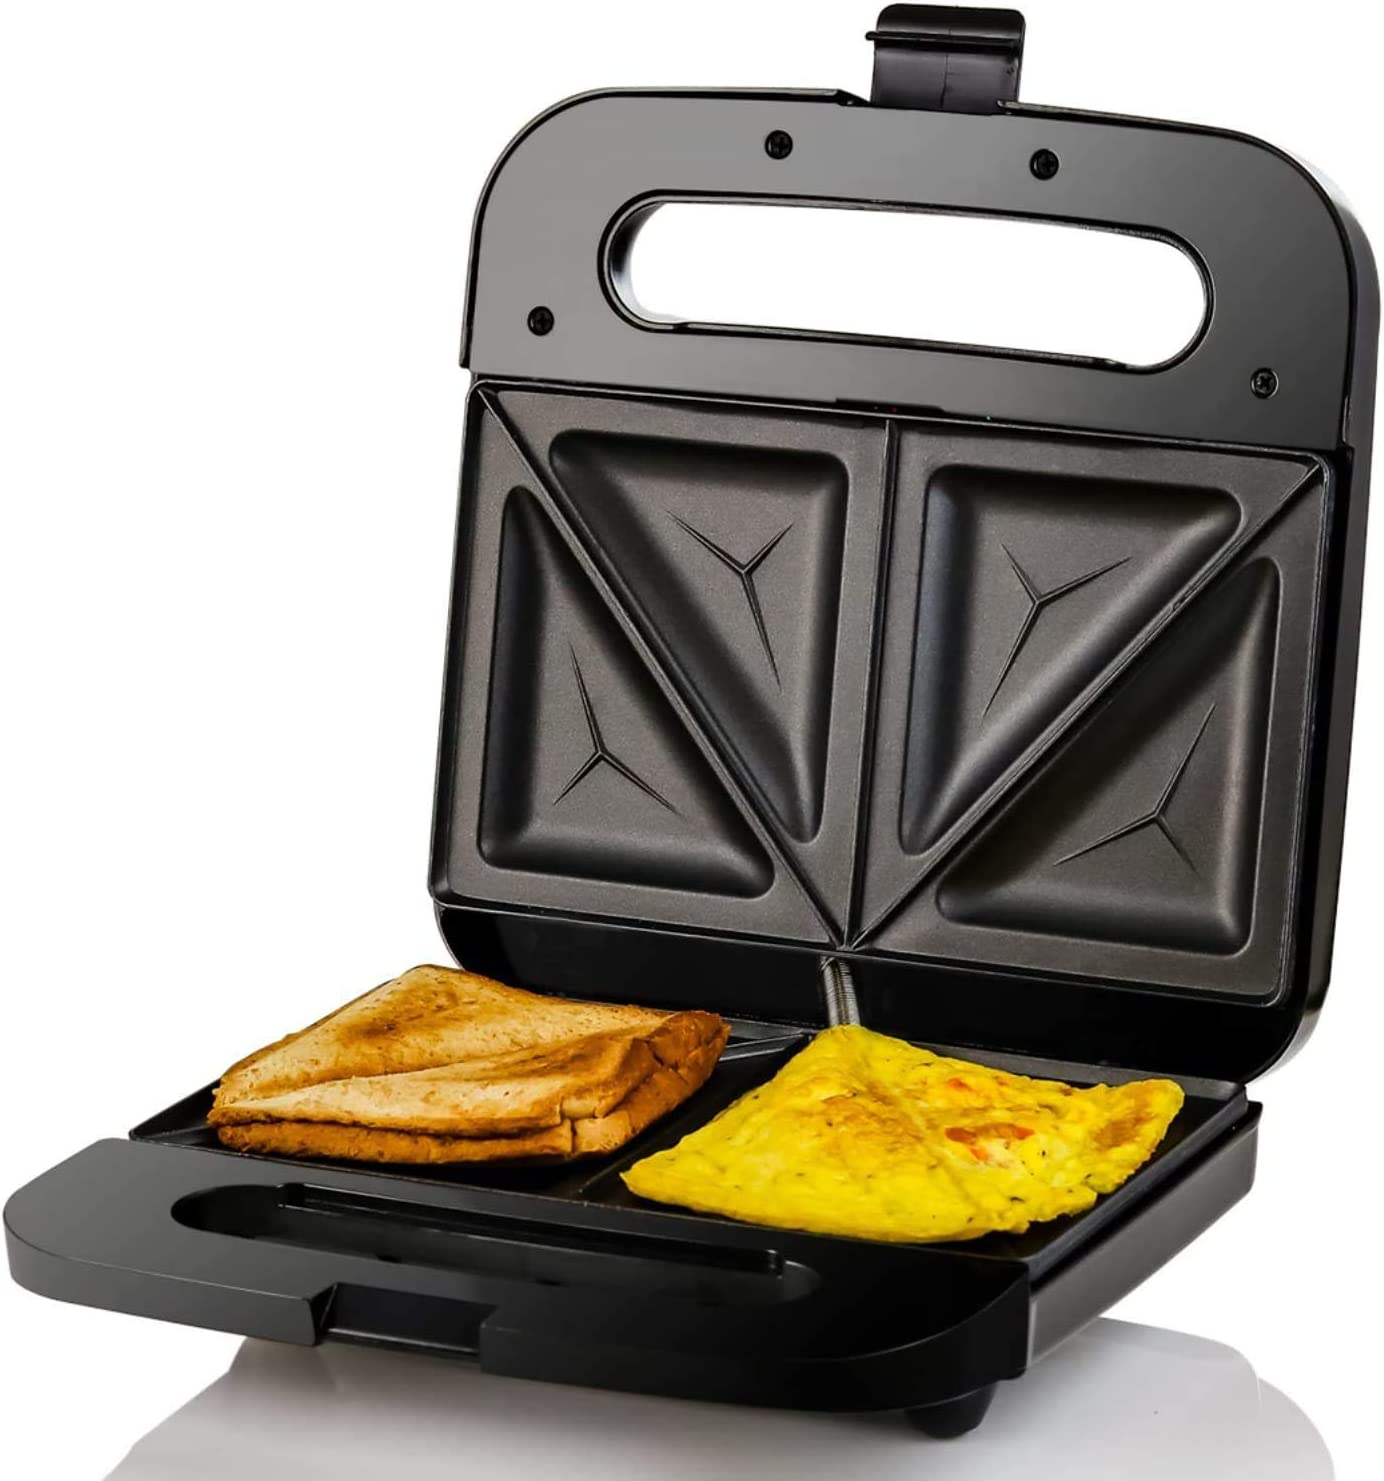 Amazon Com Ovente Electric Indoor Sandwich Grill Maker With Non Stick Cast Iron Grilling Plates 750w Countertop Bread Toaster Easy Storage Clean Perfect For Breakfast Grilled Cheese Egg Steak Black Gps401b Kitchen